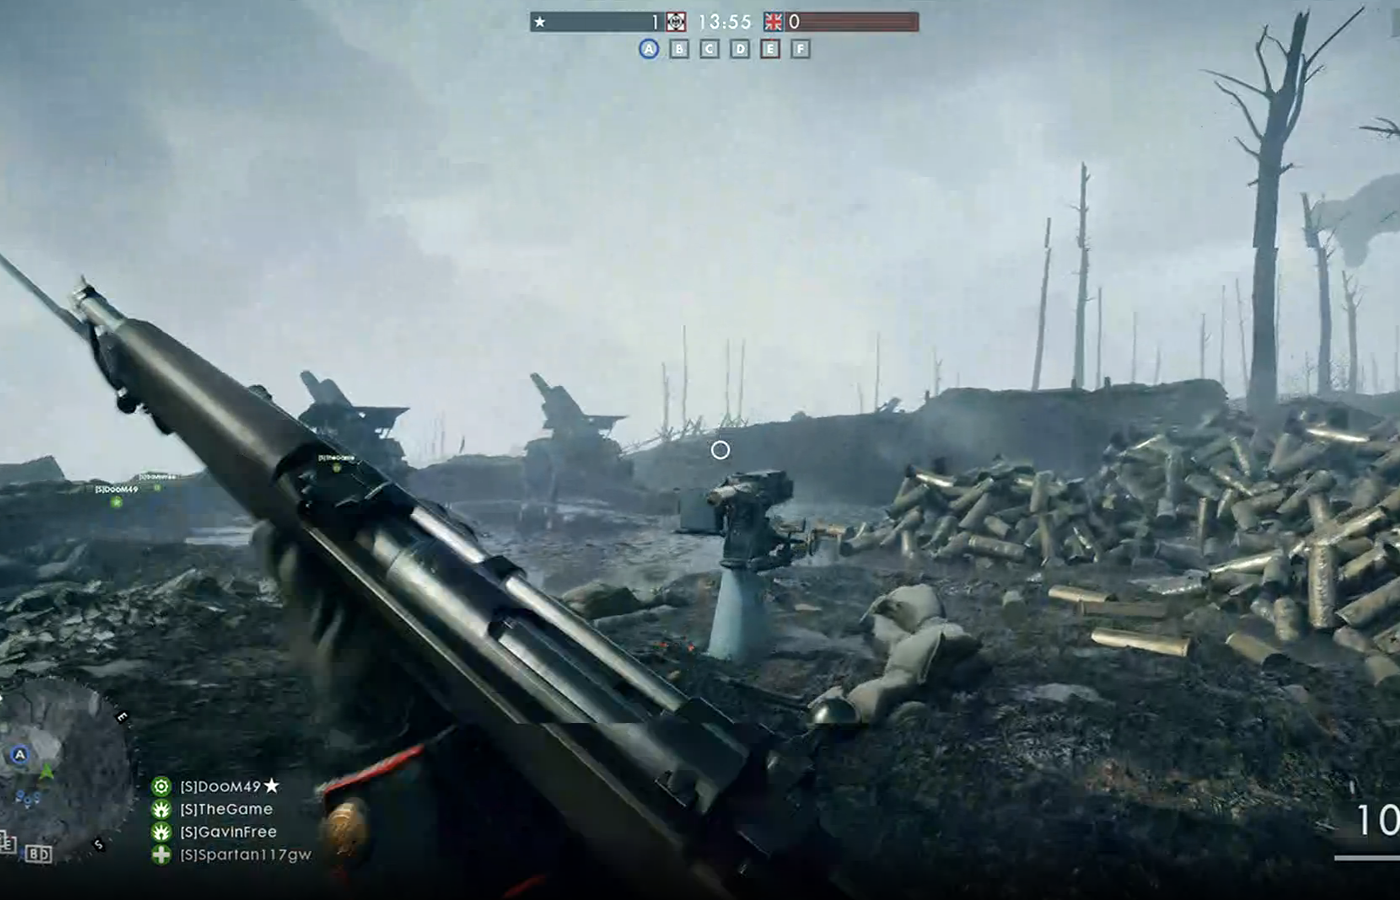 /attachments/251053029145005016143029208247071106204204024076/Battlefield1Featured.png